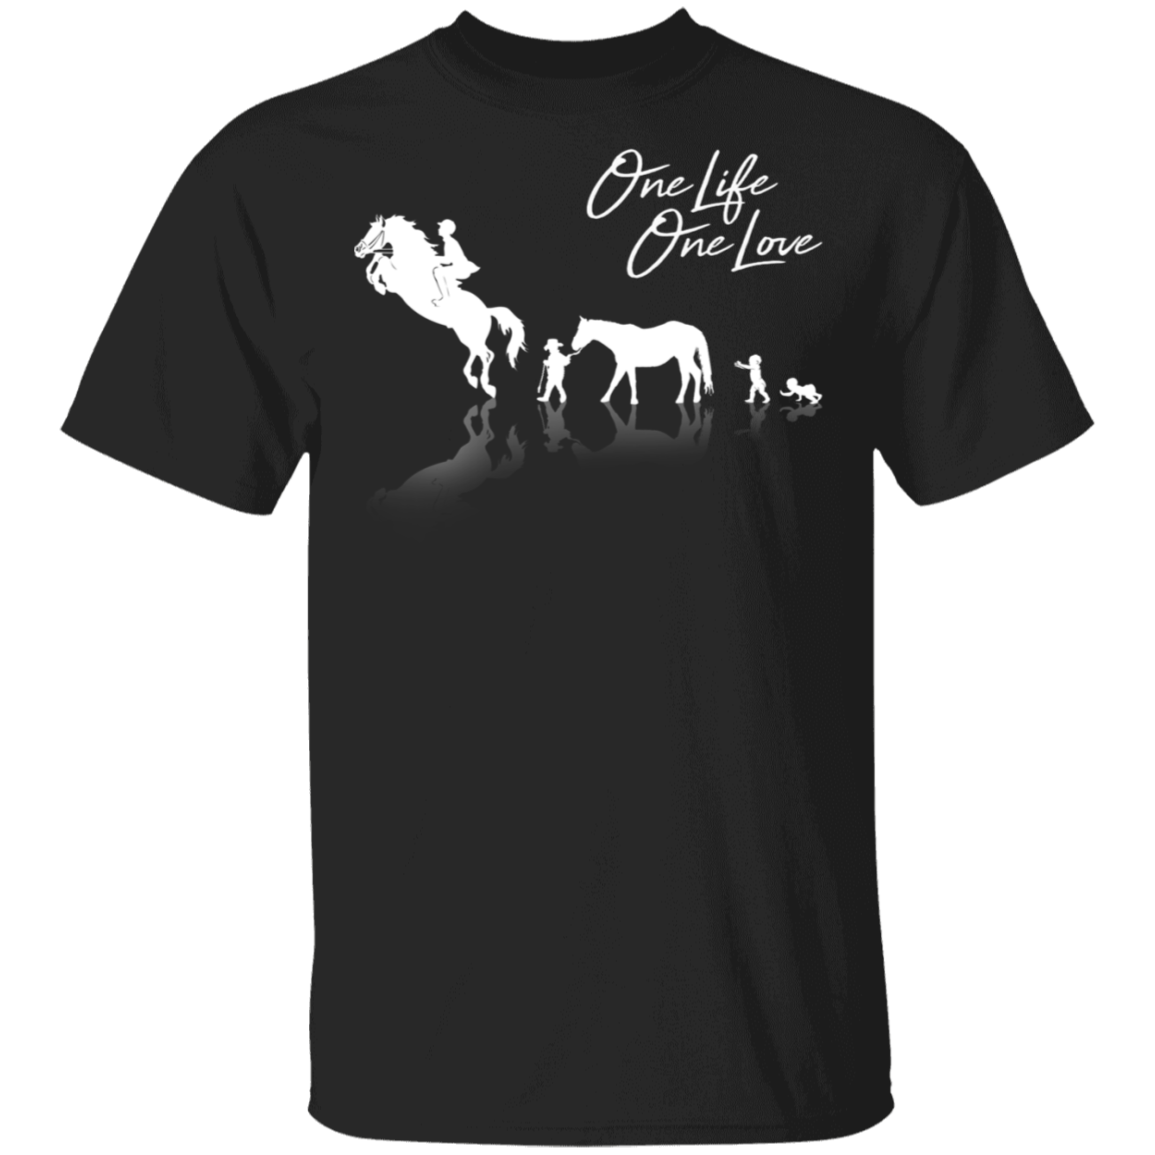 Baby And Horse One Life One Love Shirt Funny Gift For Horse Loves